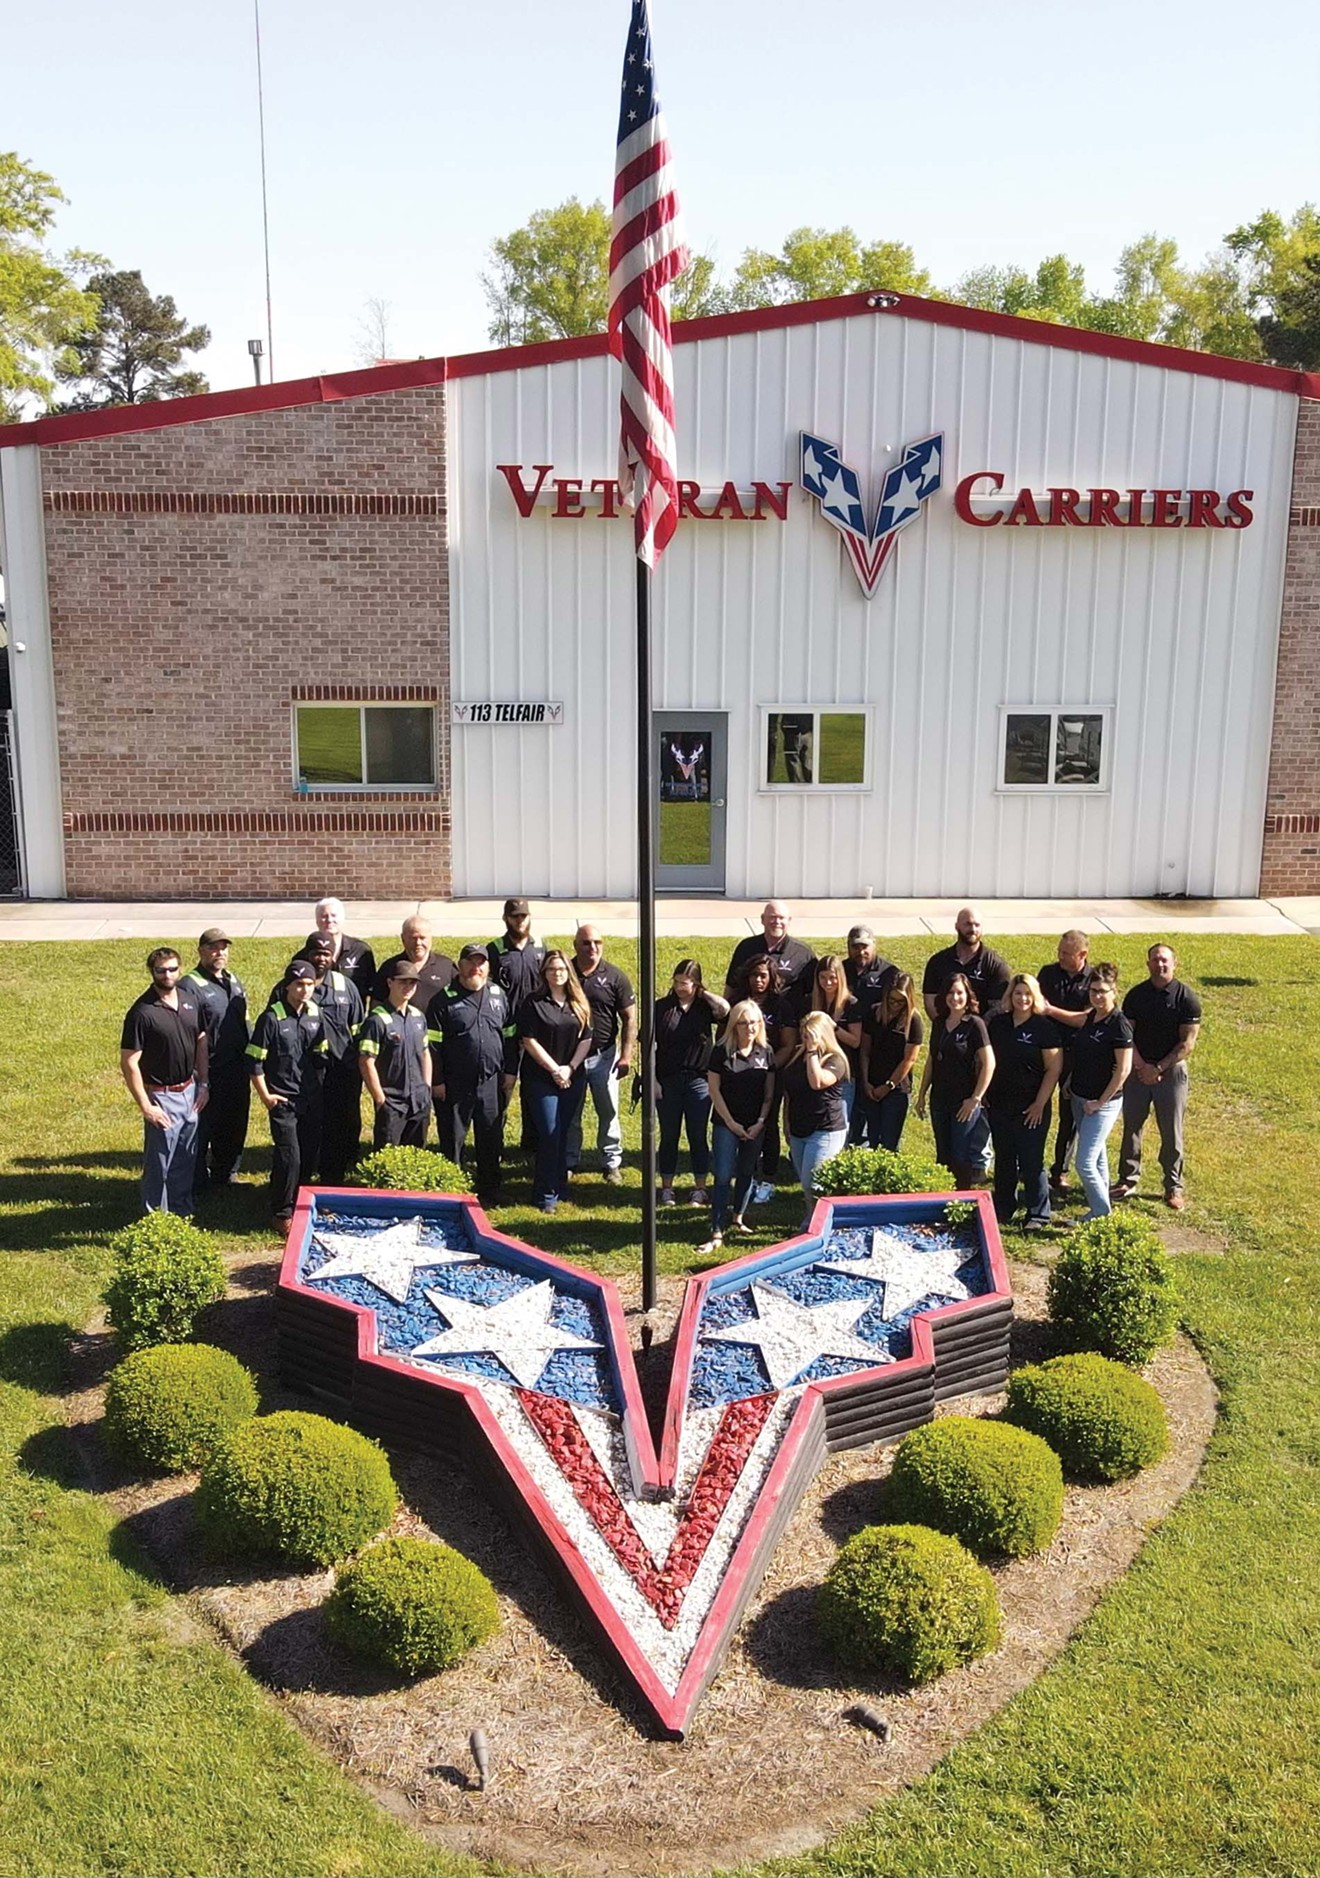 Members of Veteran Carriers work as essential employees through the pandemic in Savannah. The organization has partnered with Enmarket to salute truck drivers who kept the nation fed and supplied.